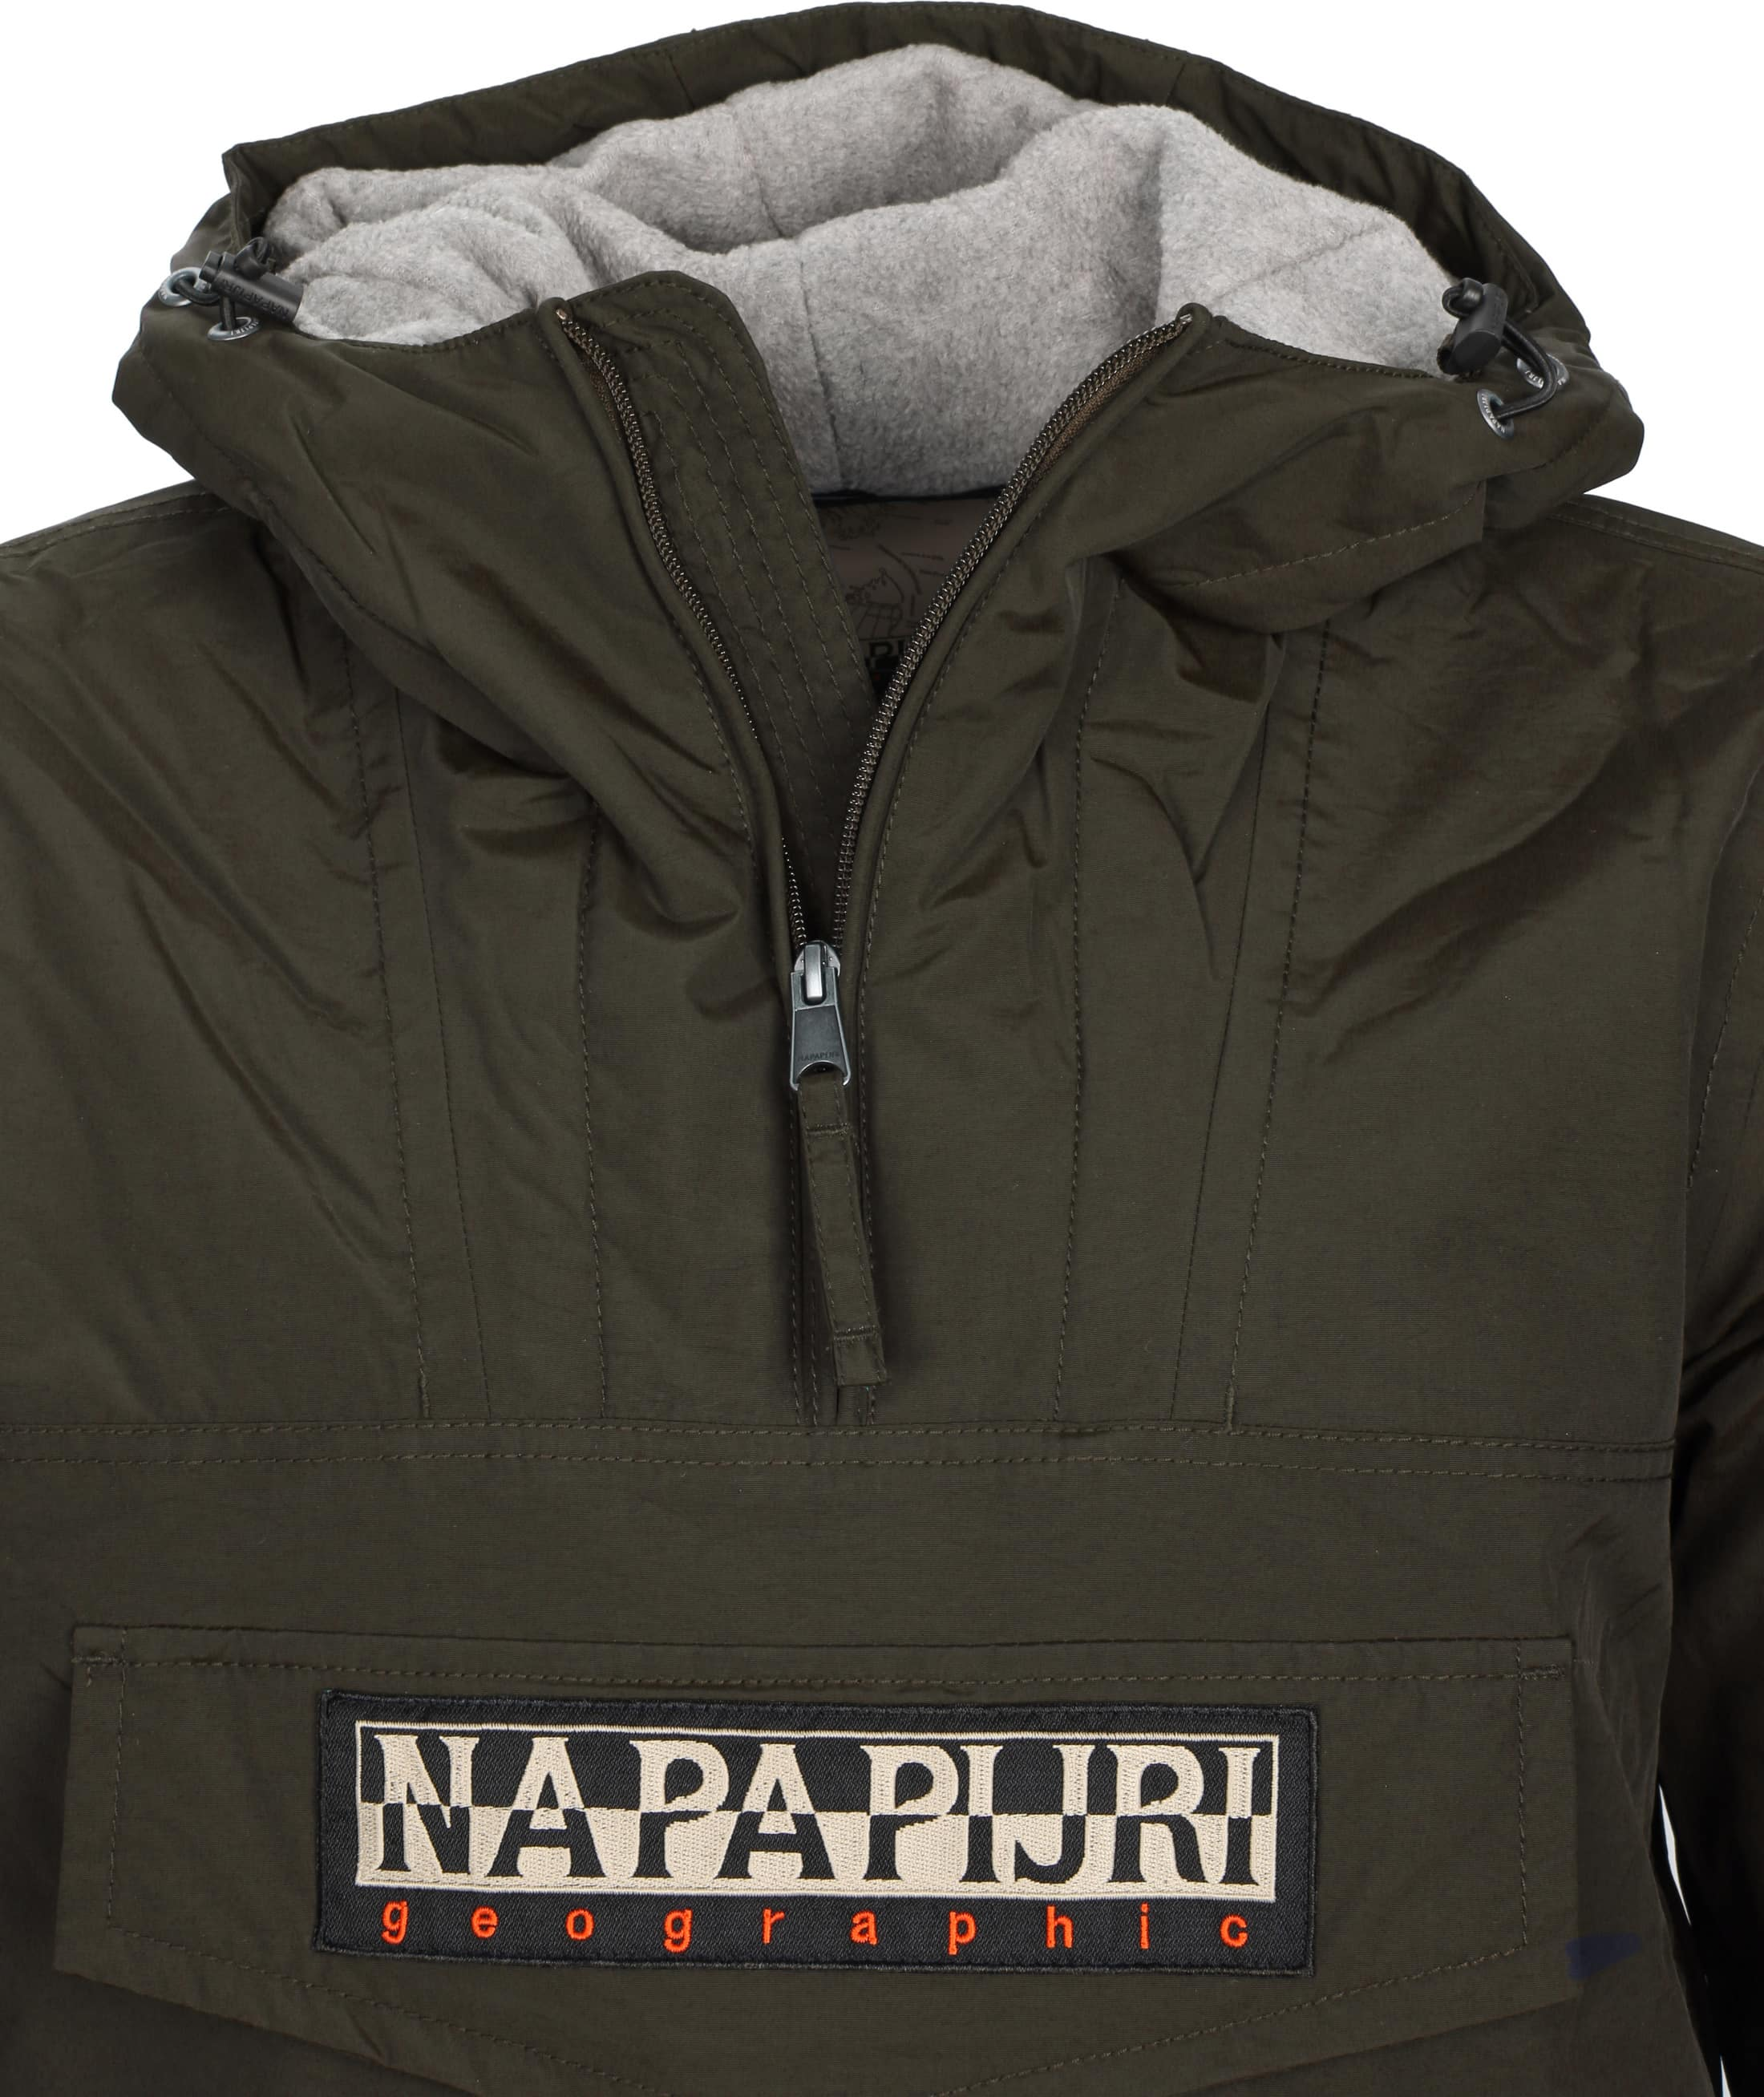 Napapijri Anorak Rainforest Pocket Darkgreen foto 1